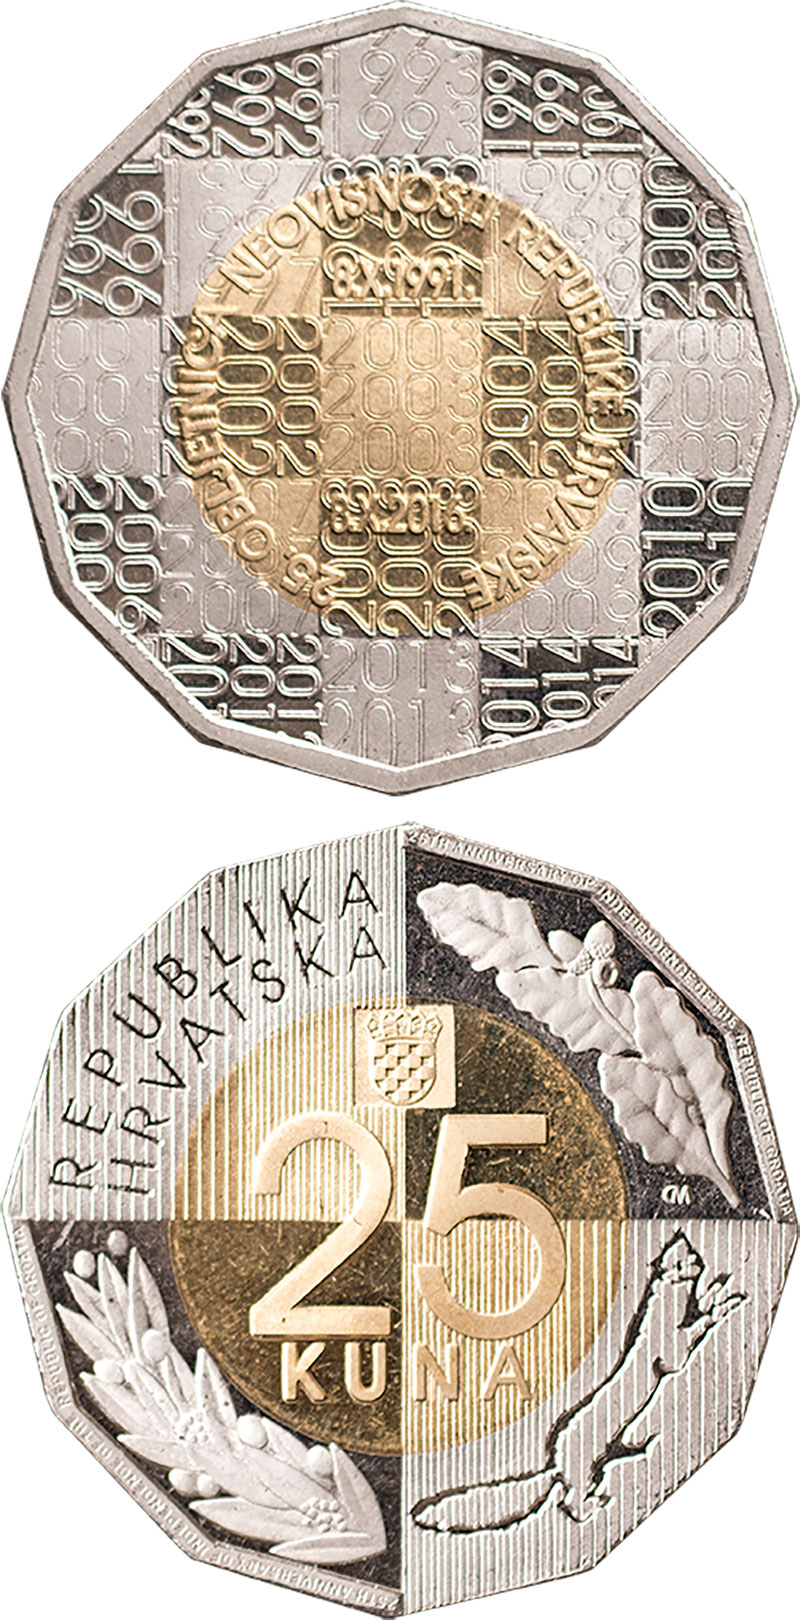 Image of 25th Anniversary of Independence of the Republic of Croatia – 25 kuna coin Croatia 2016